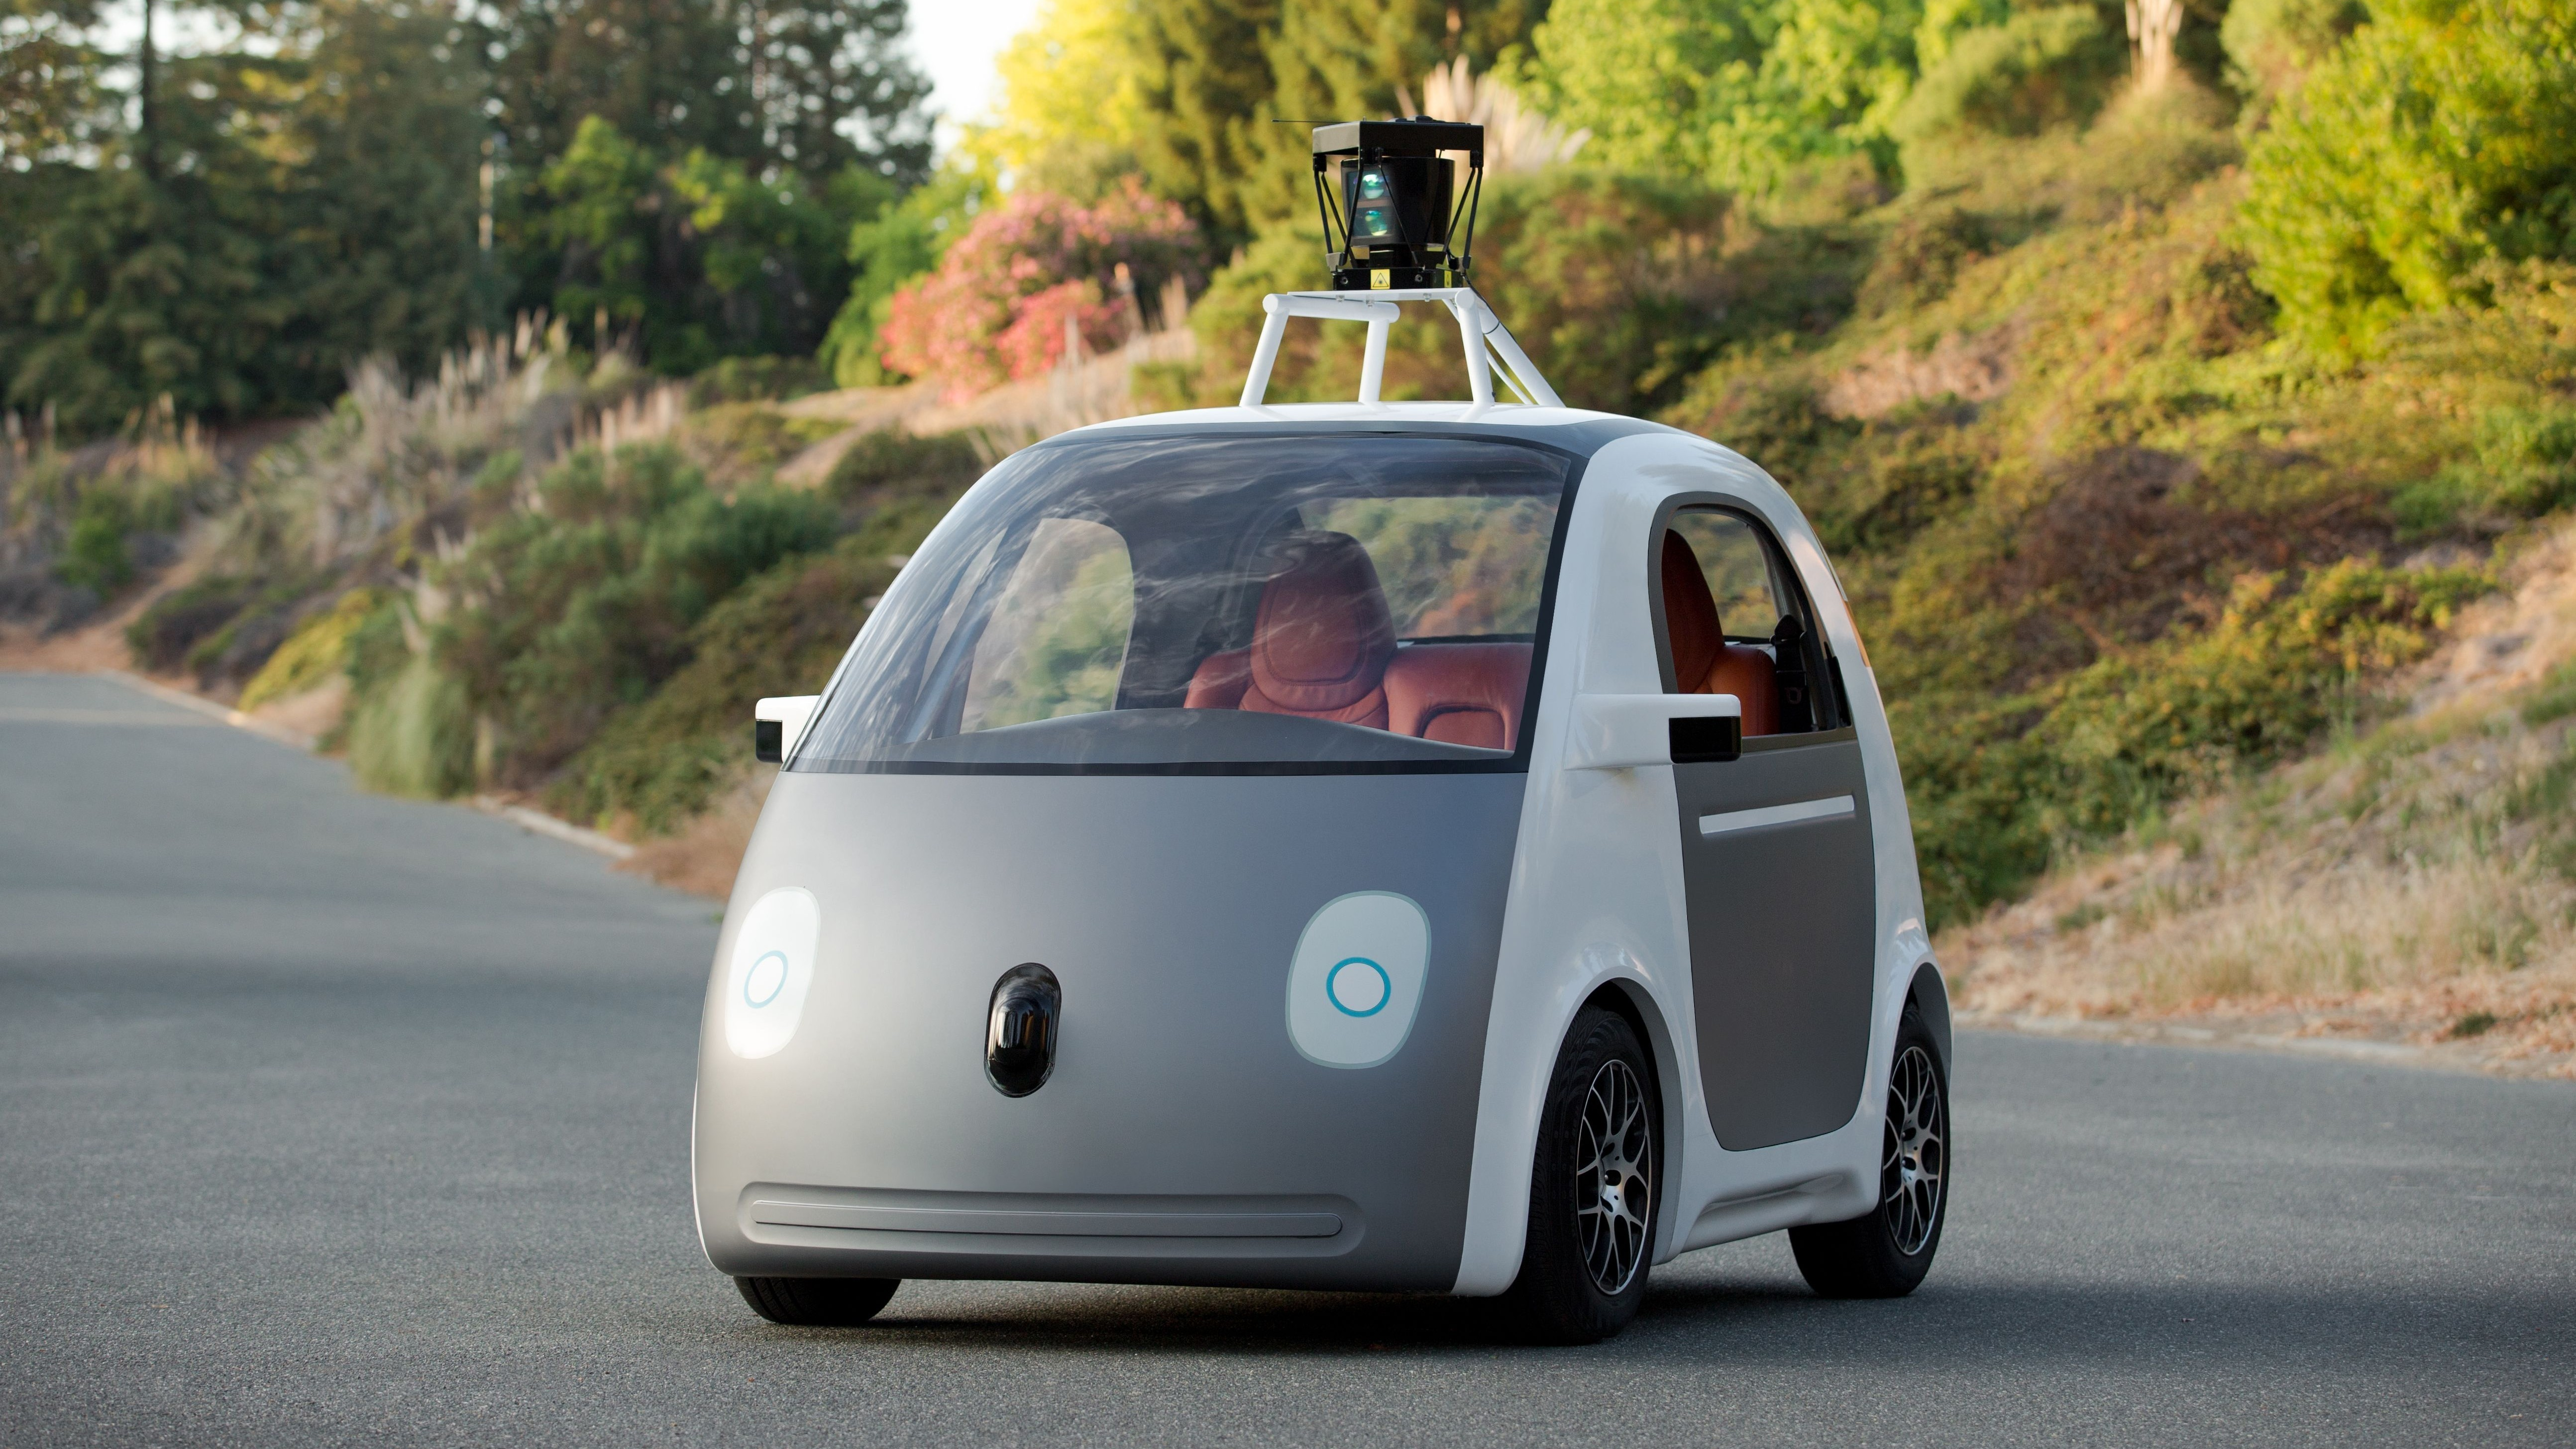 Survey: Nearly Half of Drivers Are Comfortable With (Limited) Driverless Tech